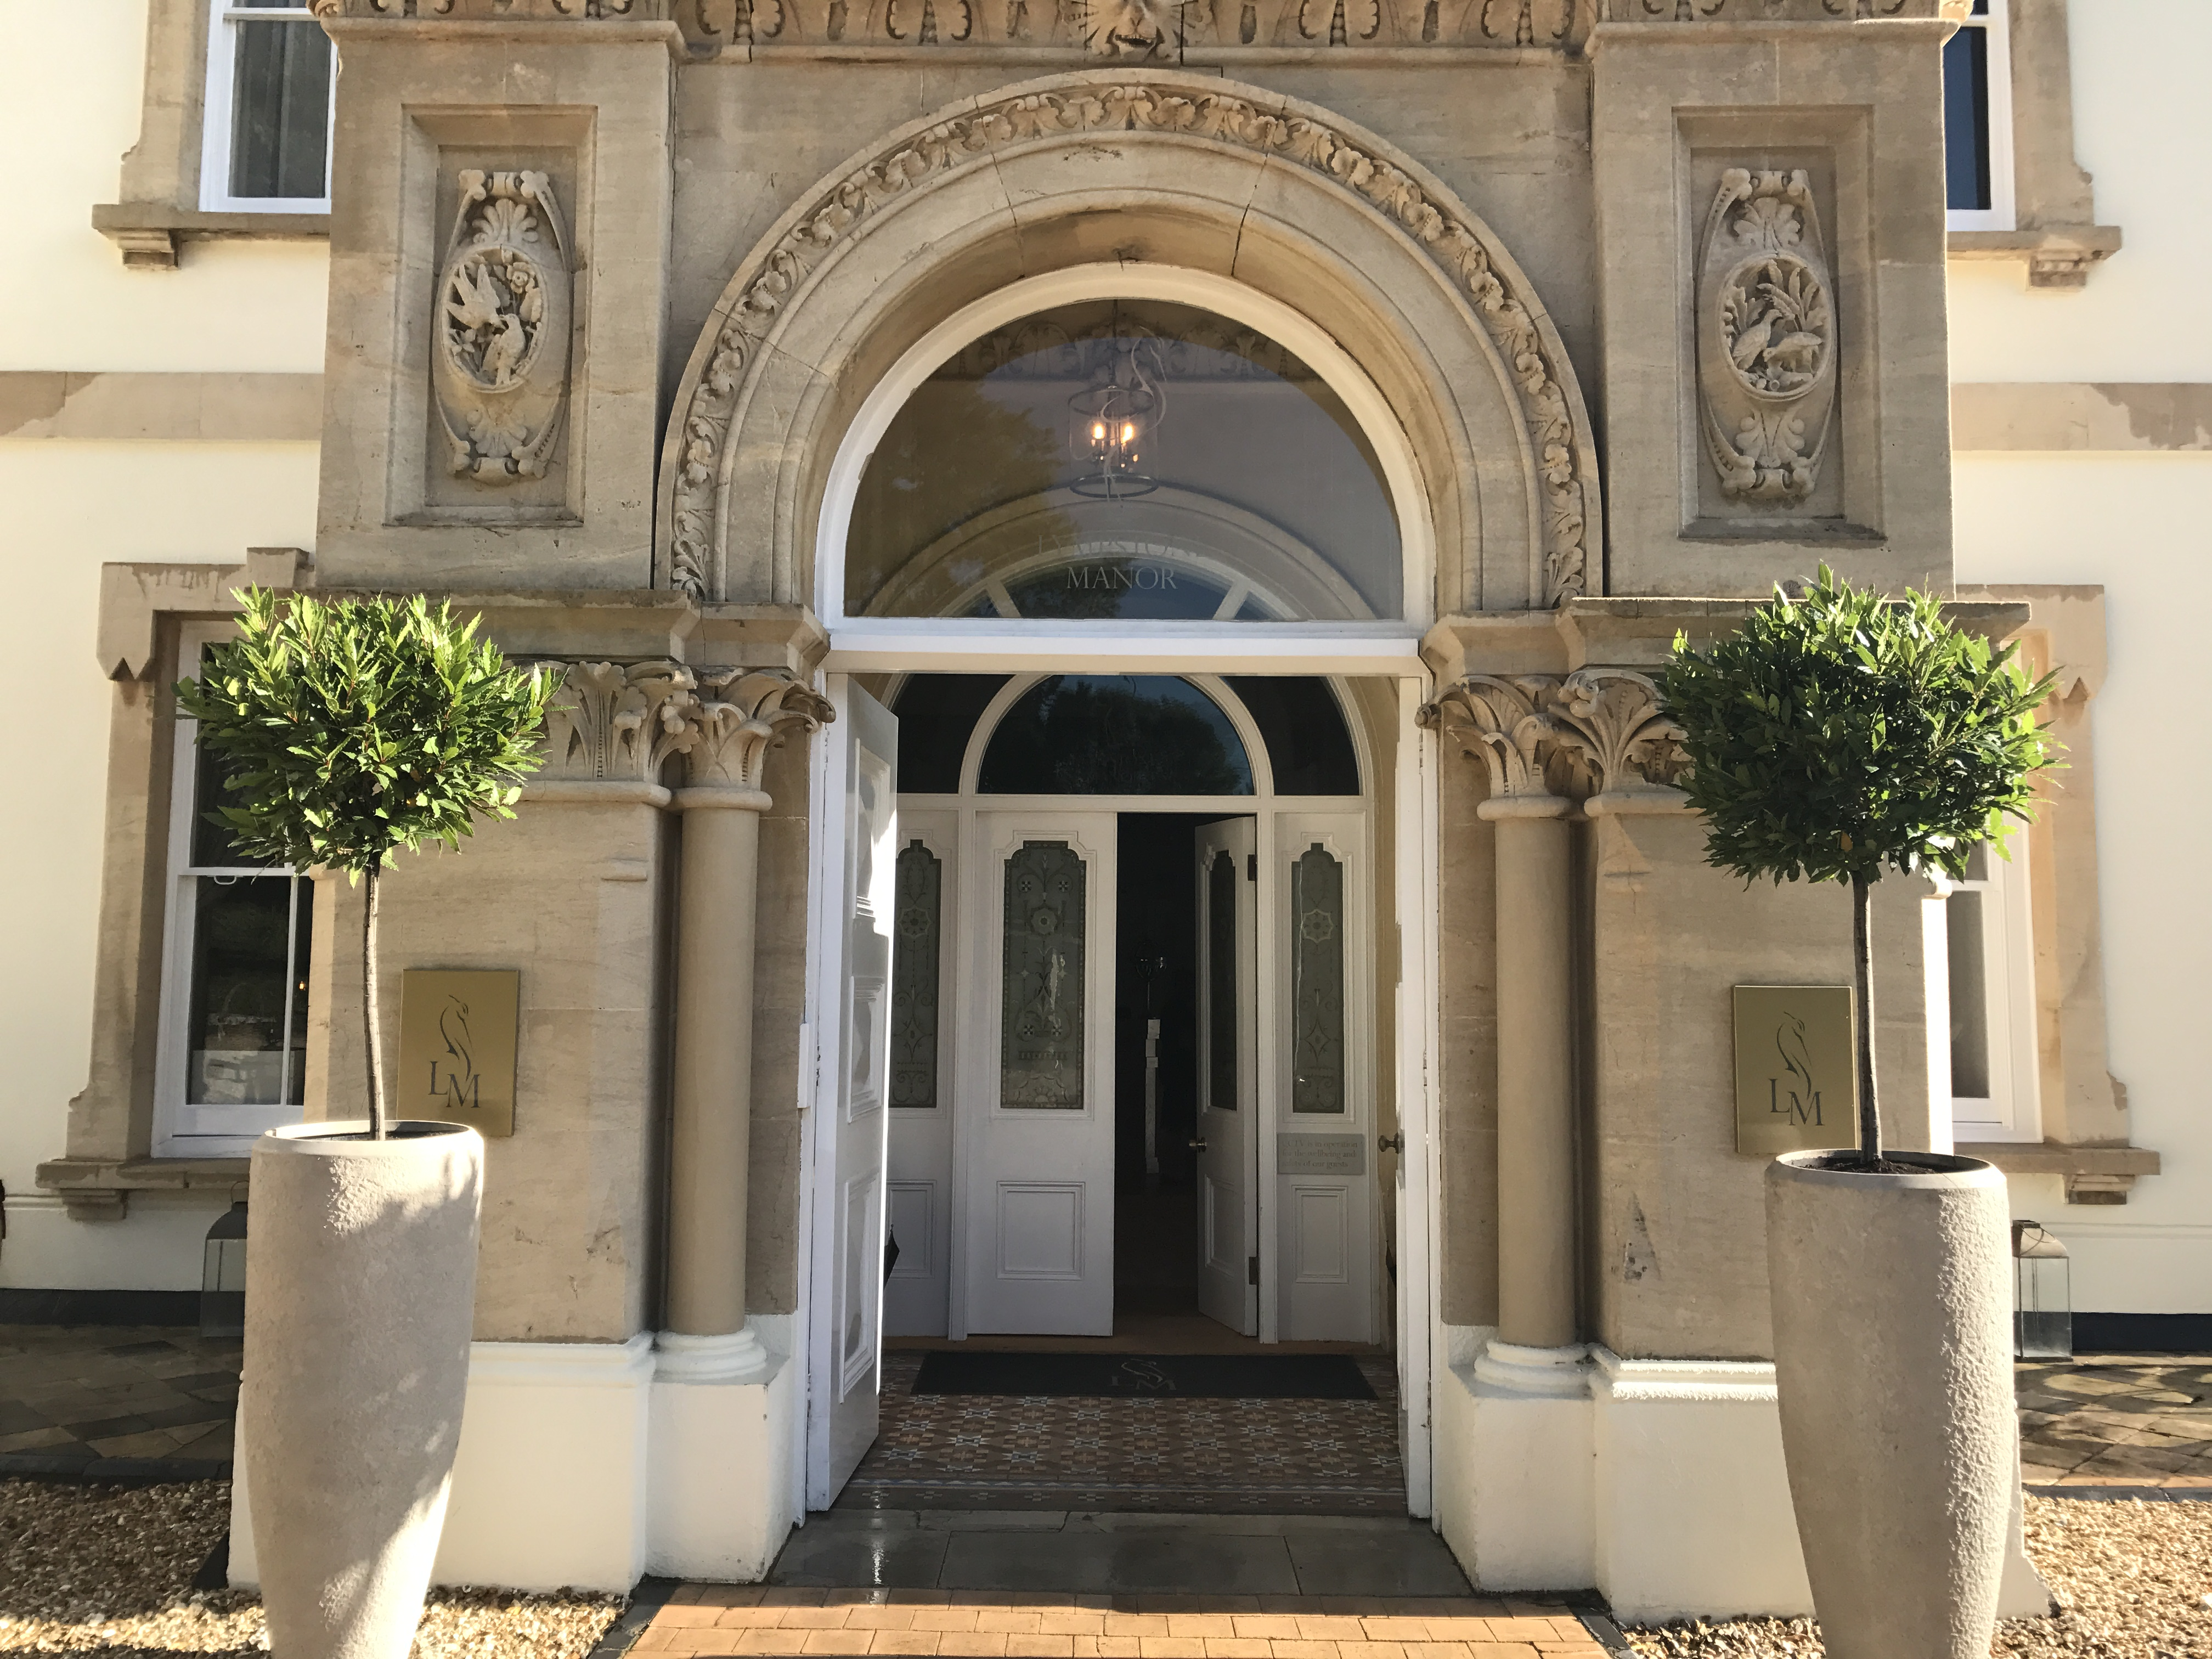 Lympstone manor hotel restaurant review is michael for Hotel michelin